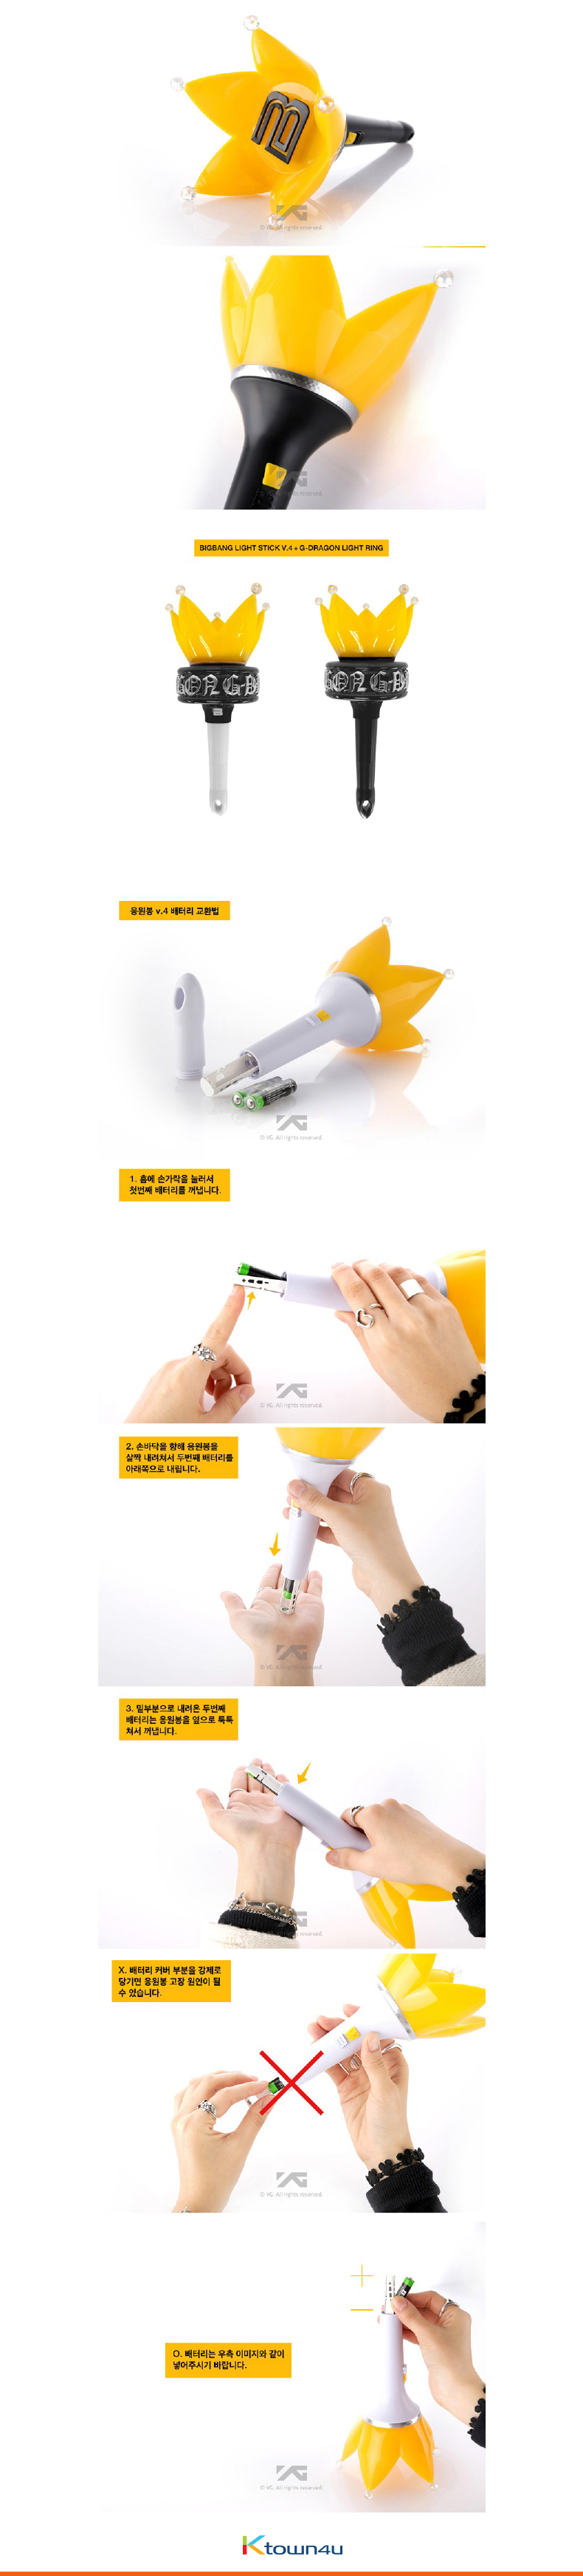 Big Bang - 皇冠灯 Fan Light stick (Ver.4) 第四代